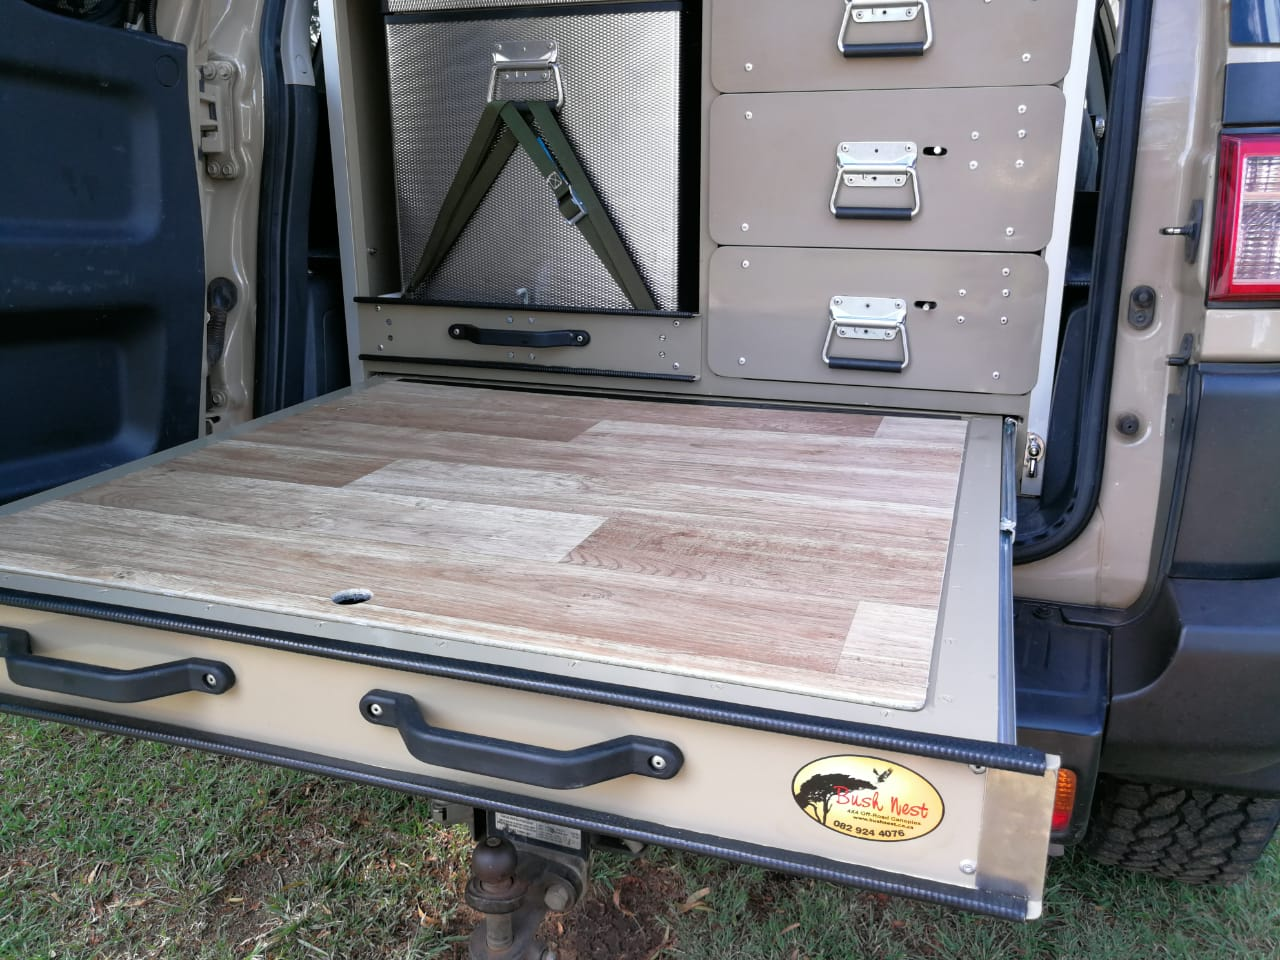 Drawer Systems | Bush Nest 4×4 Trailers